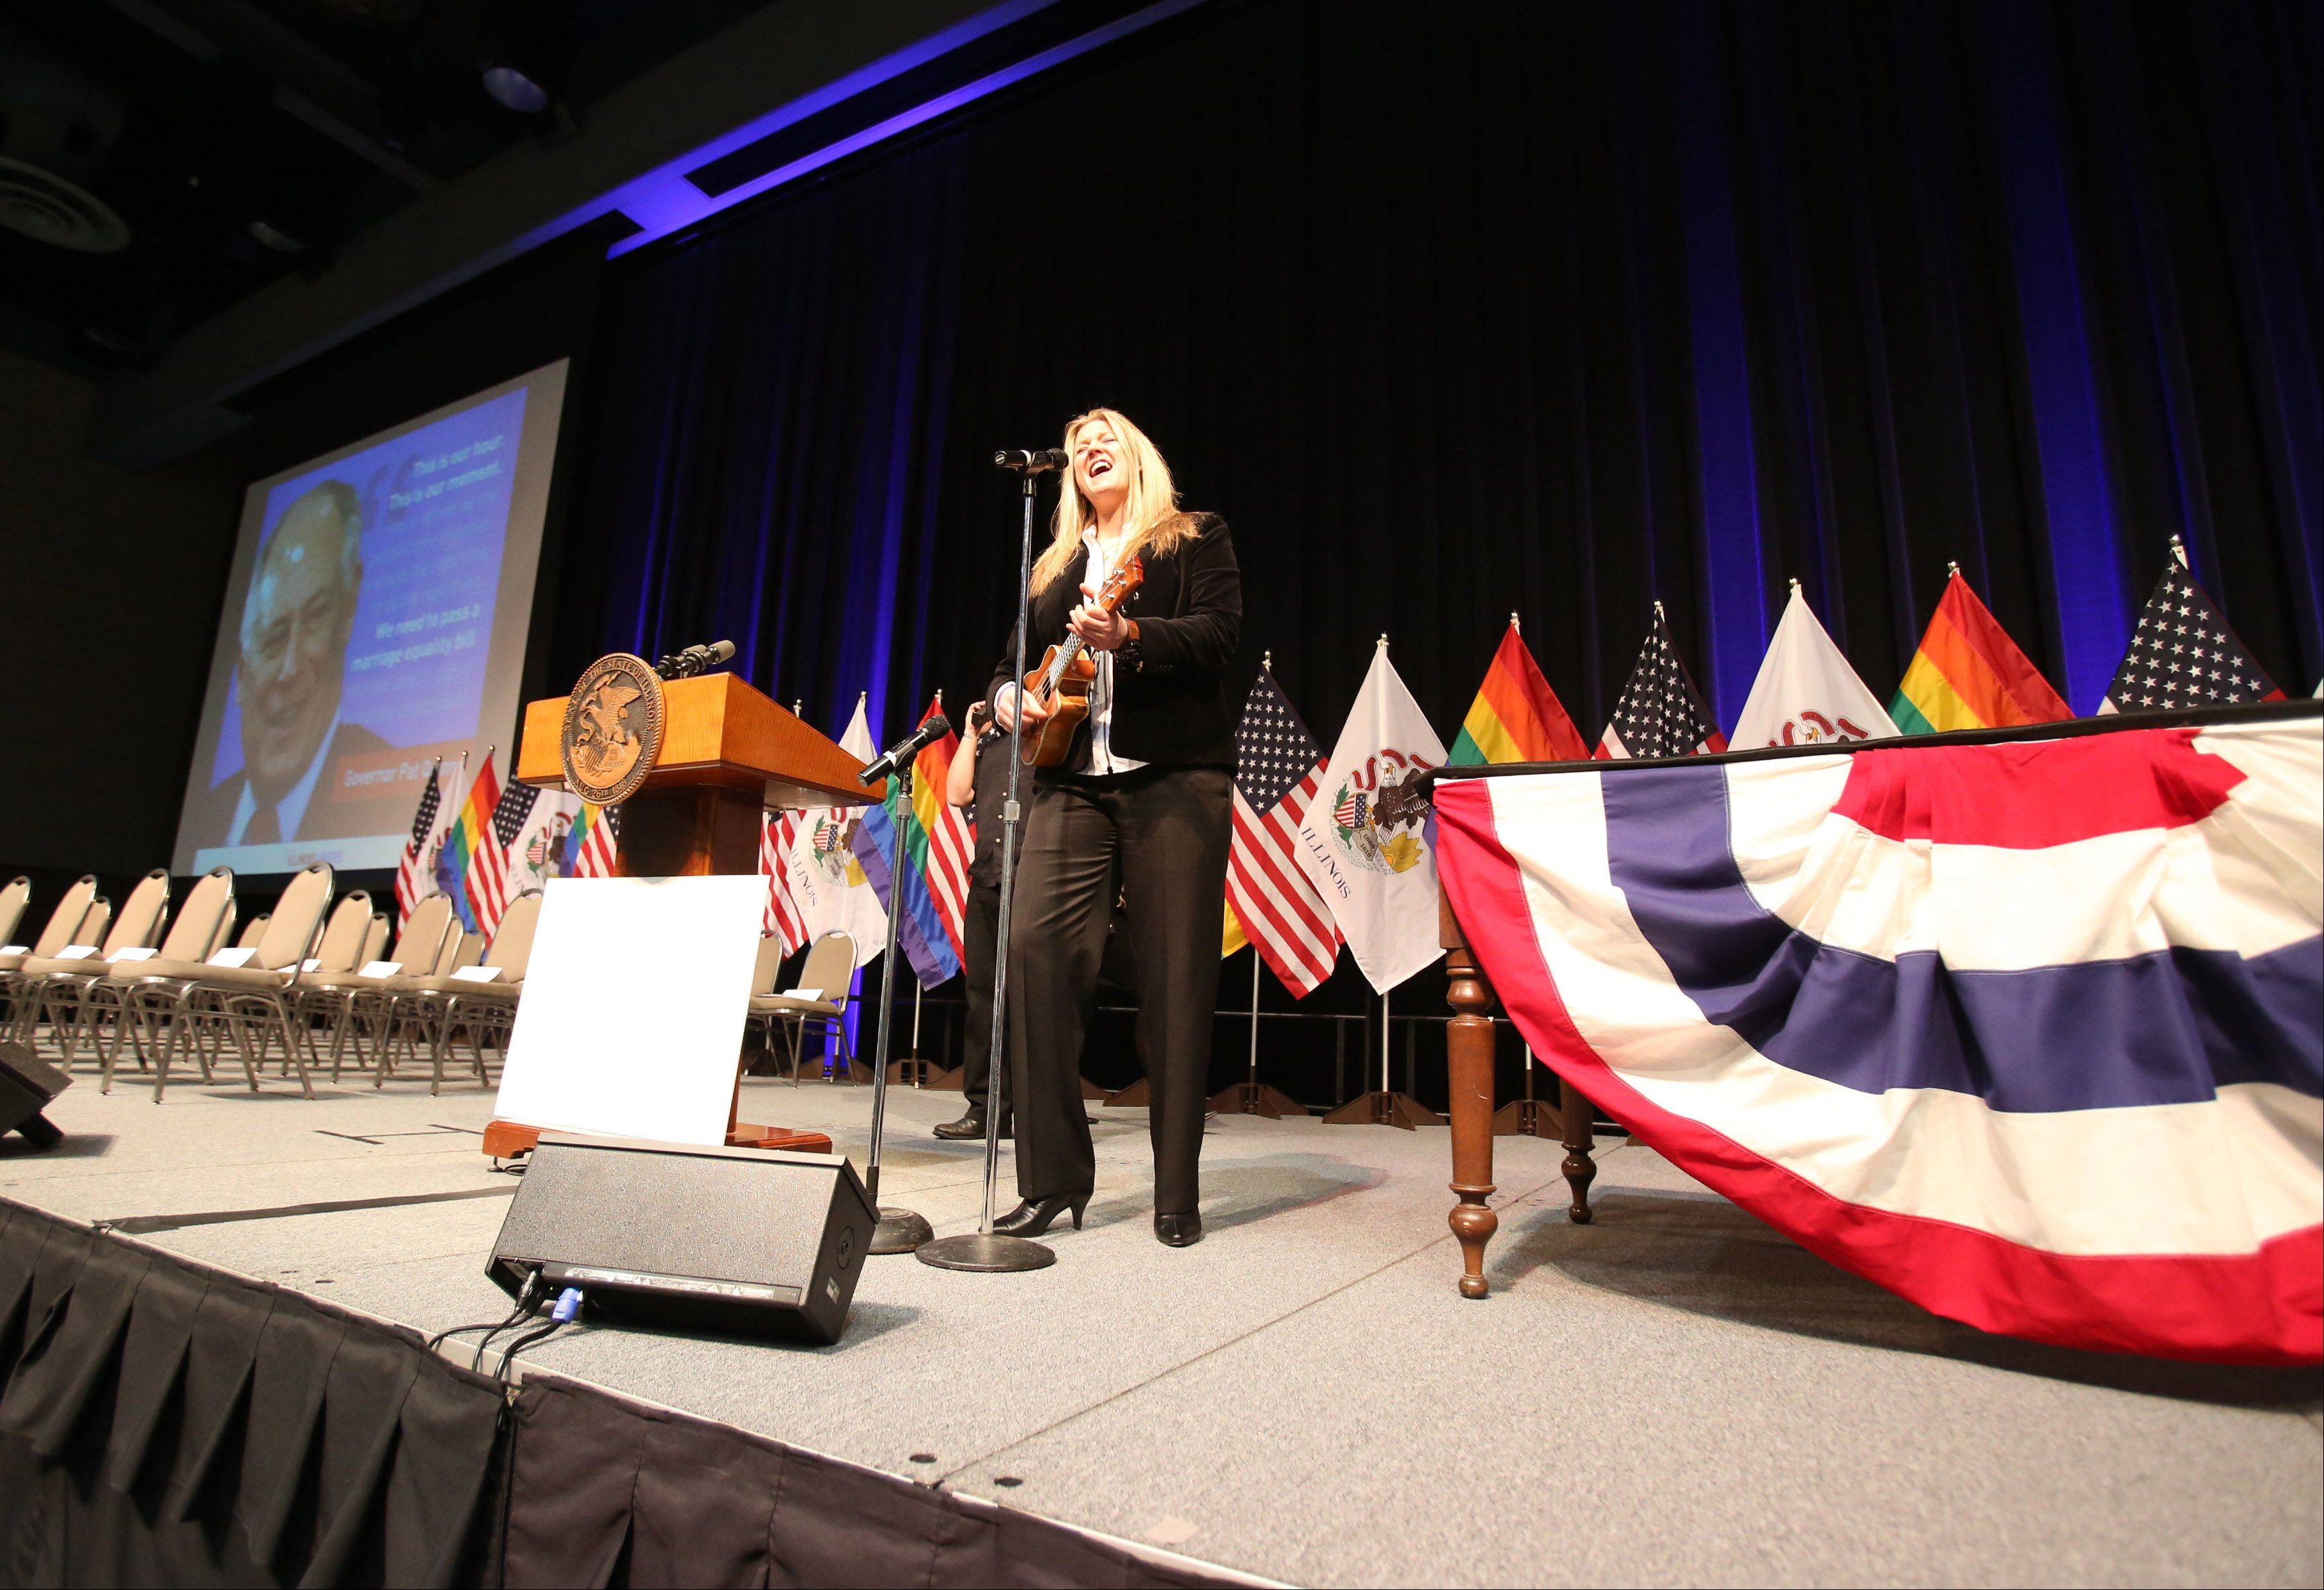 Sami Grisafe of Chicago rehearses the National Anthem which before performing at the start of the program.